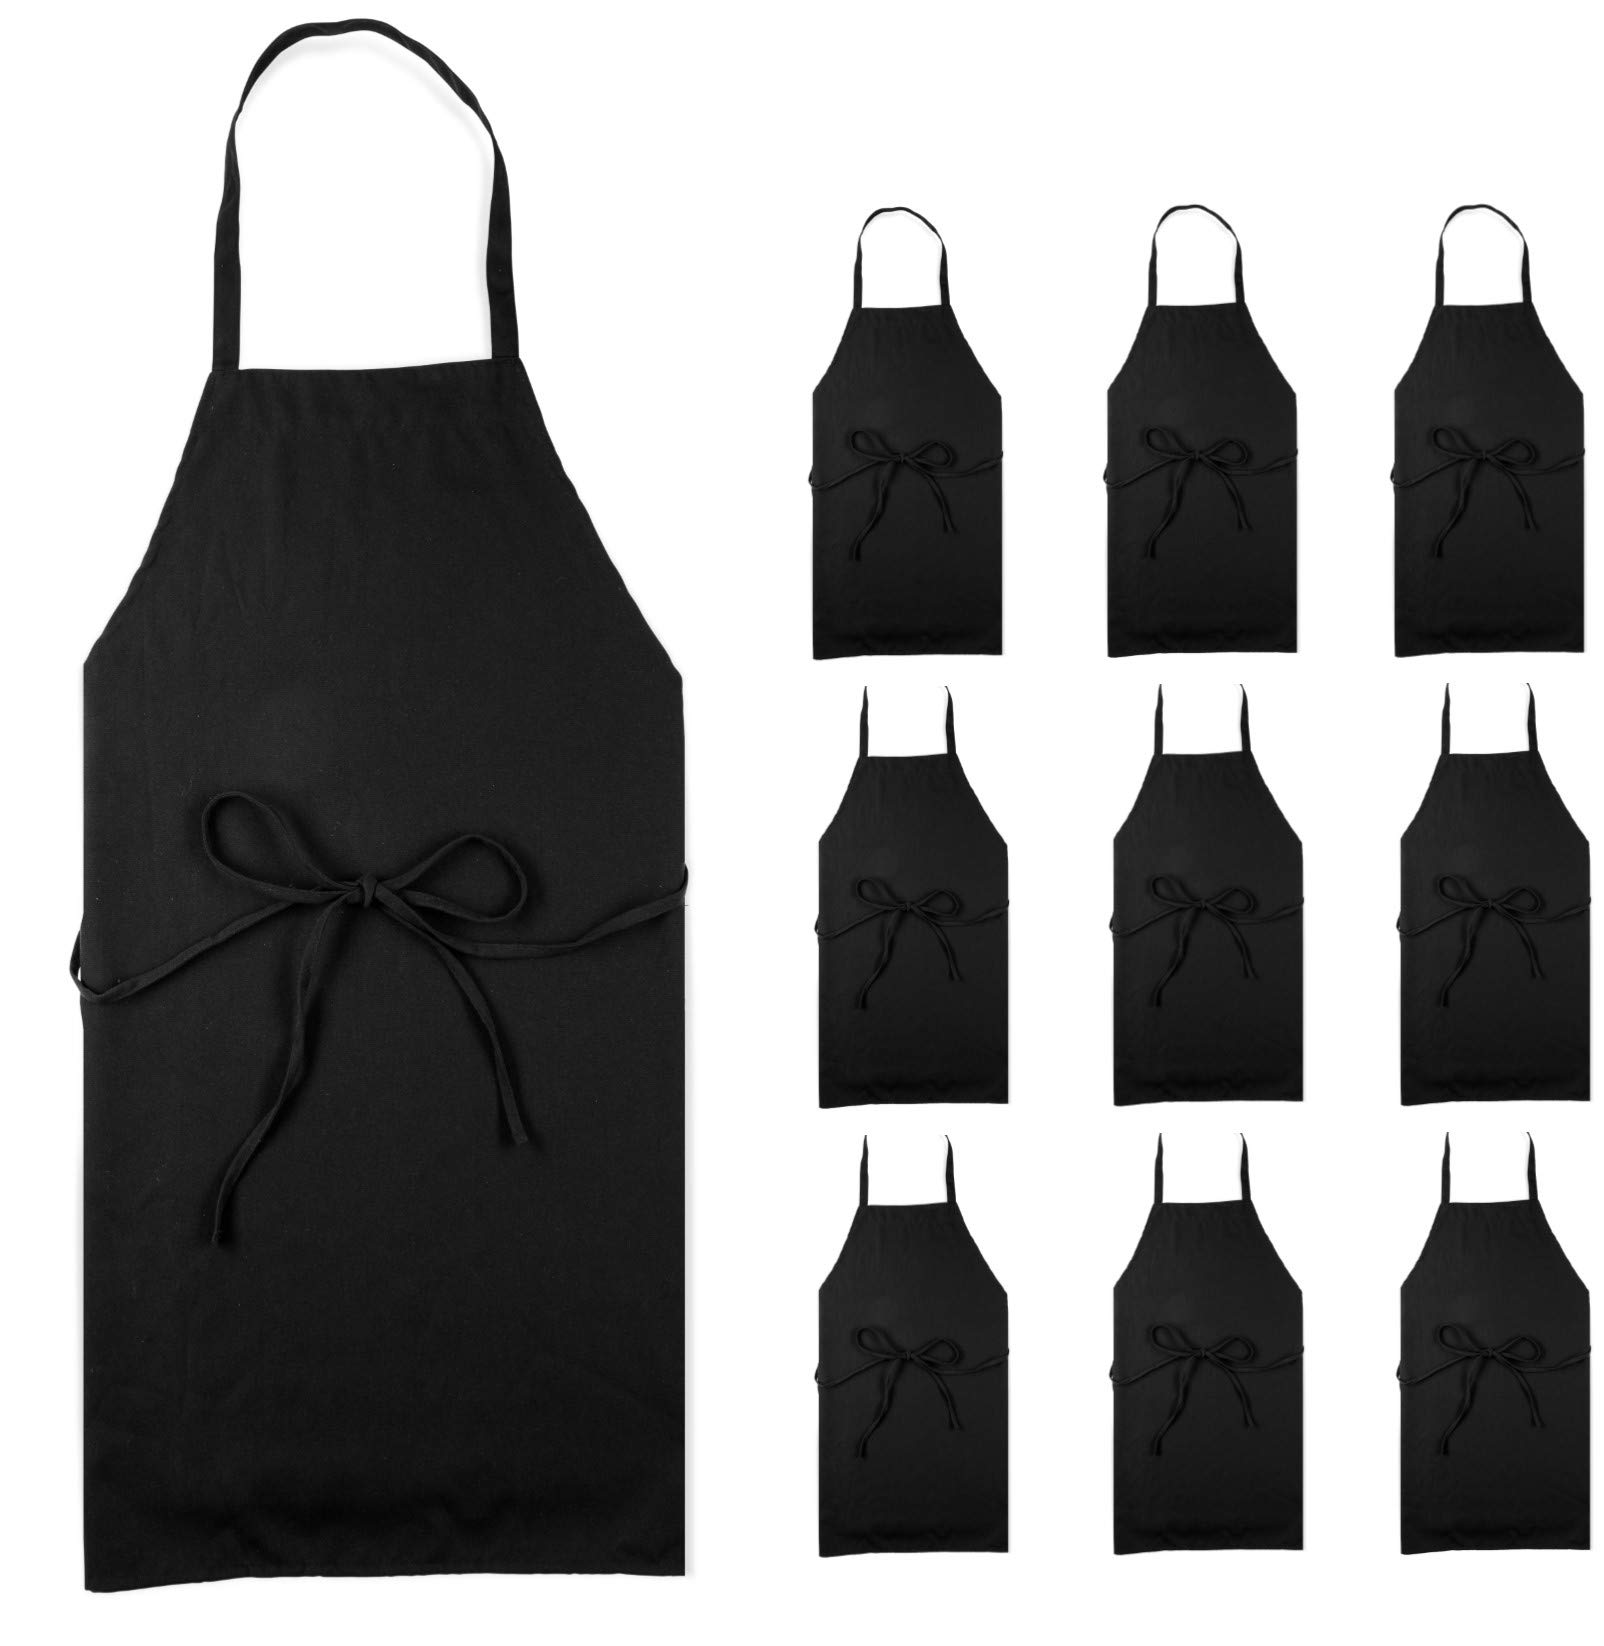 Professional Black Bib Aprons for Restaurant - Set of 12 Durable Adult Waitress Chef Kitchen Apron for women & men (Bulk 12 Pack - Black) by White Classic